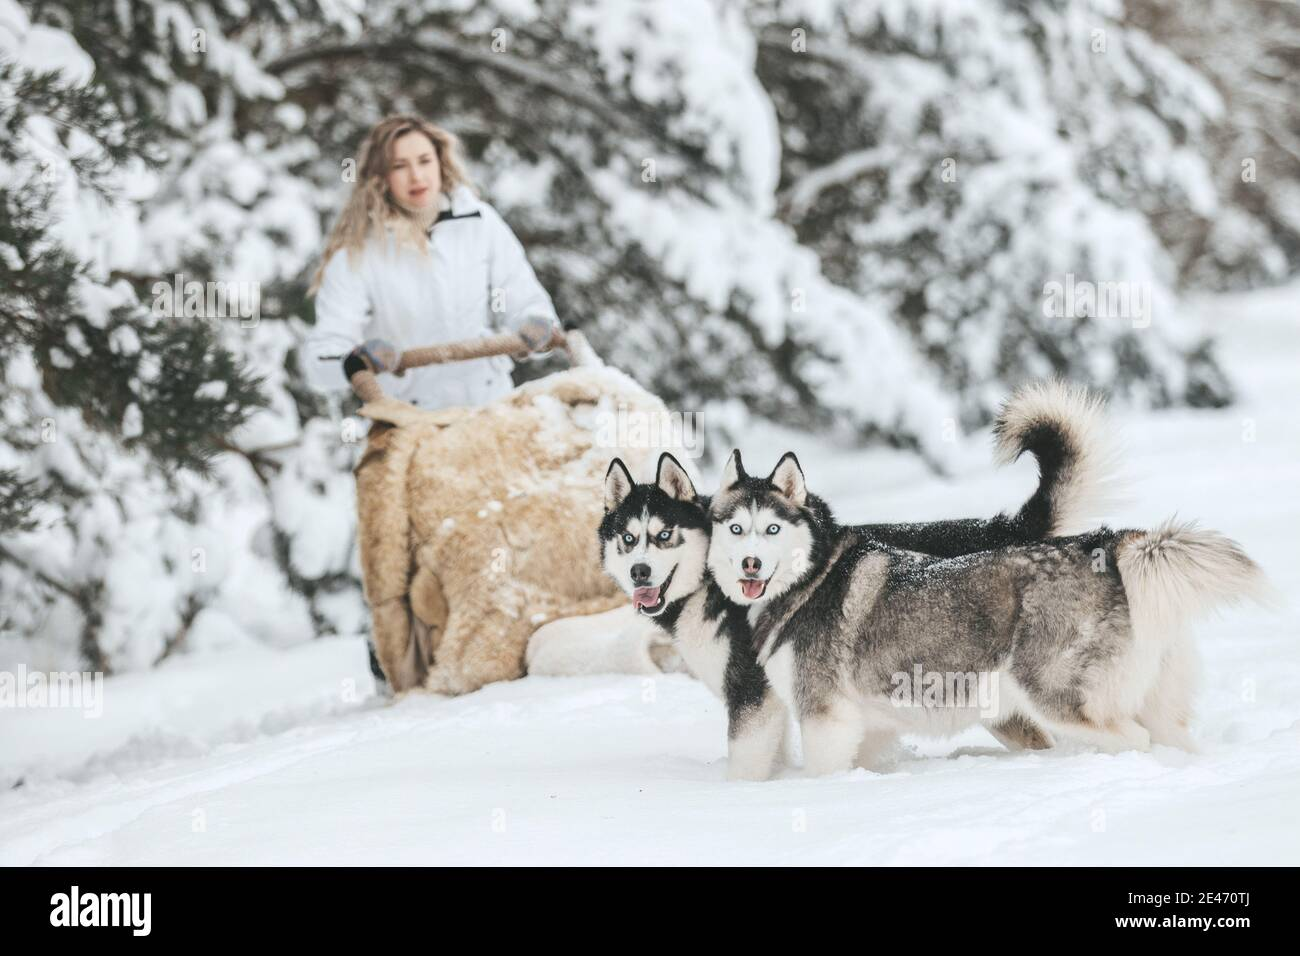 The girl rides on a sled on a sled with Siberian huskies in the winter forest. Pet. Husky. Husky art poster, Husky print, Stock Photo